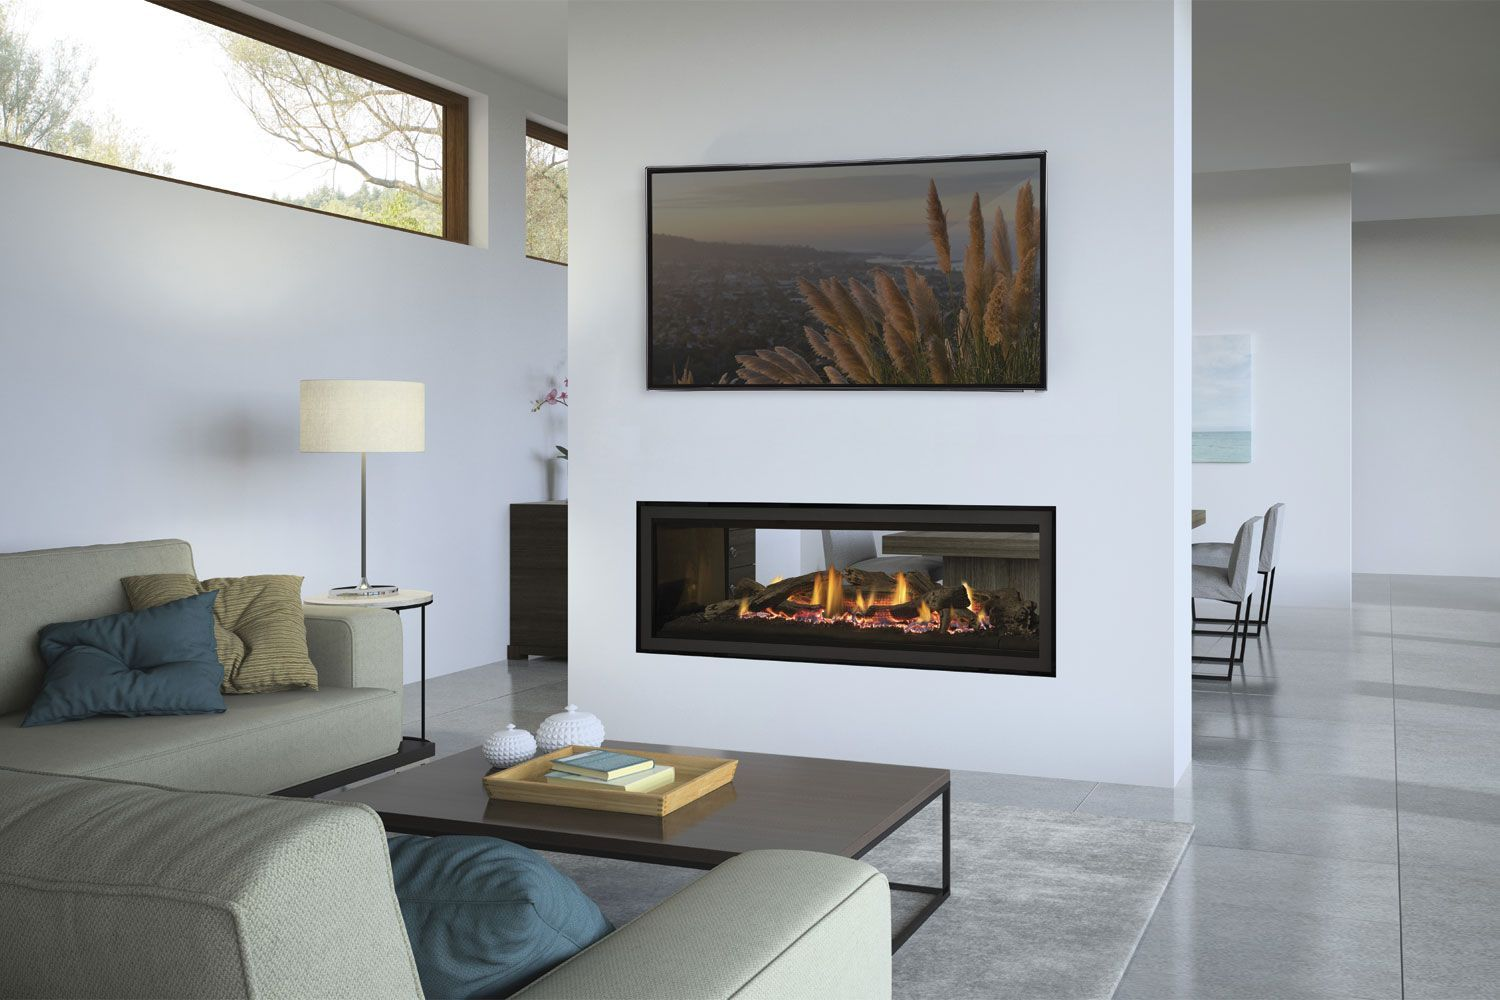 Why You Should Consider A Double Sided Fireplace If A Conventional Fireplace Adds A Touch Of Warm Double Sided Fireplace Fireplace Design Modern Fireplace